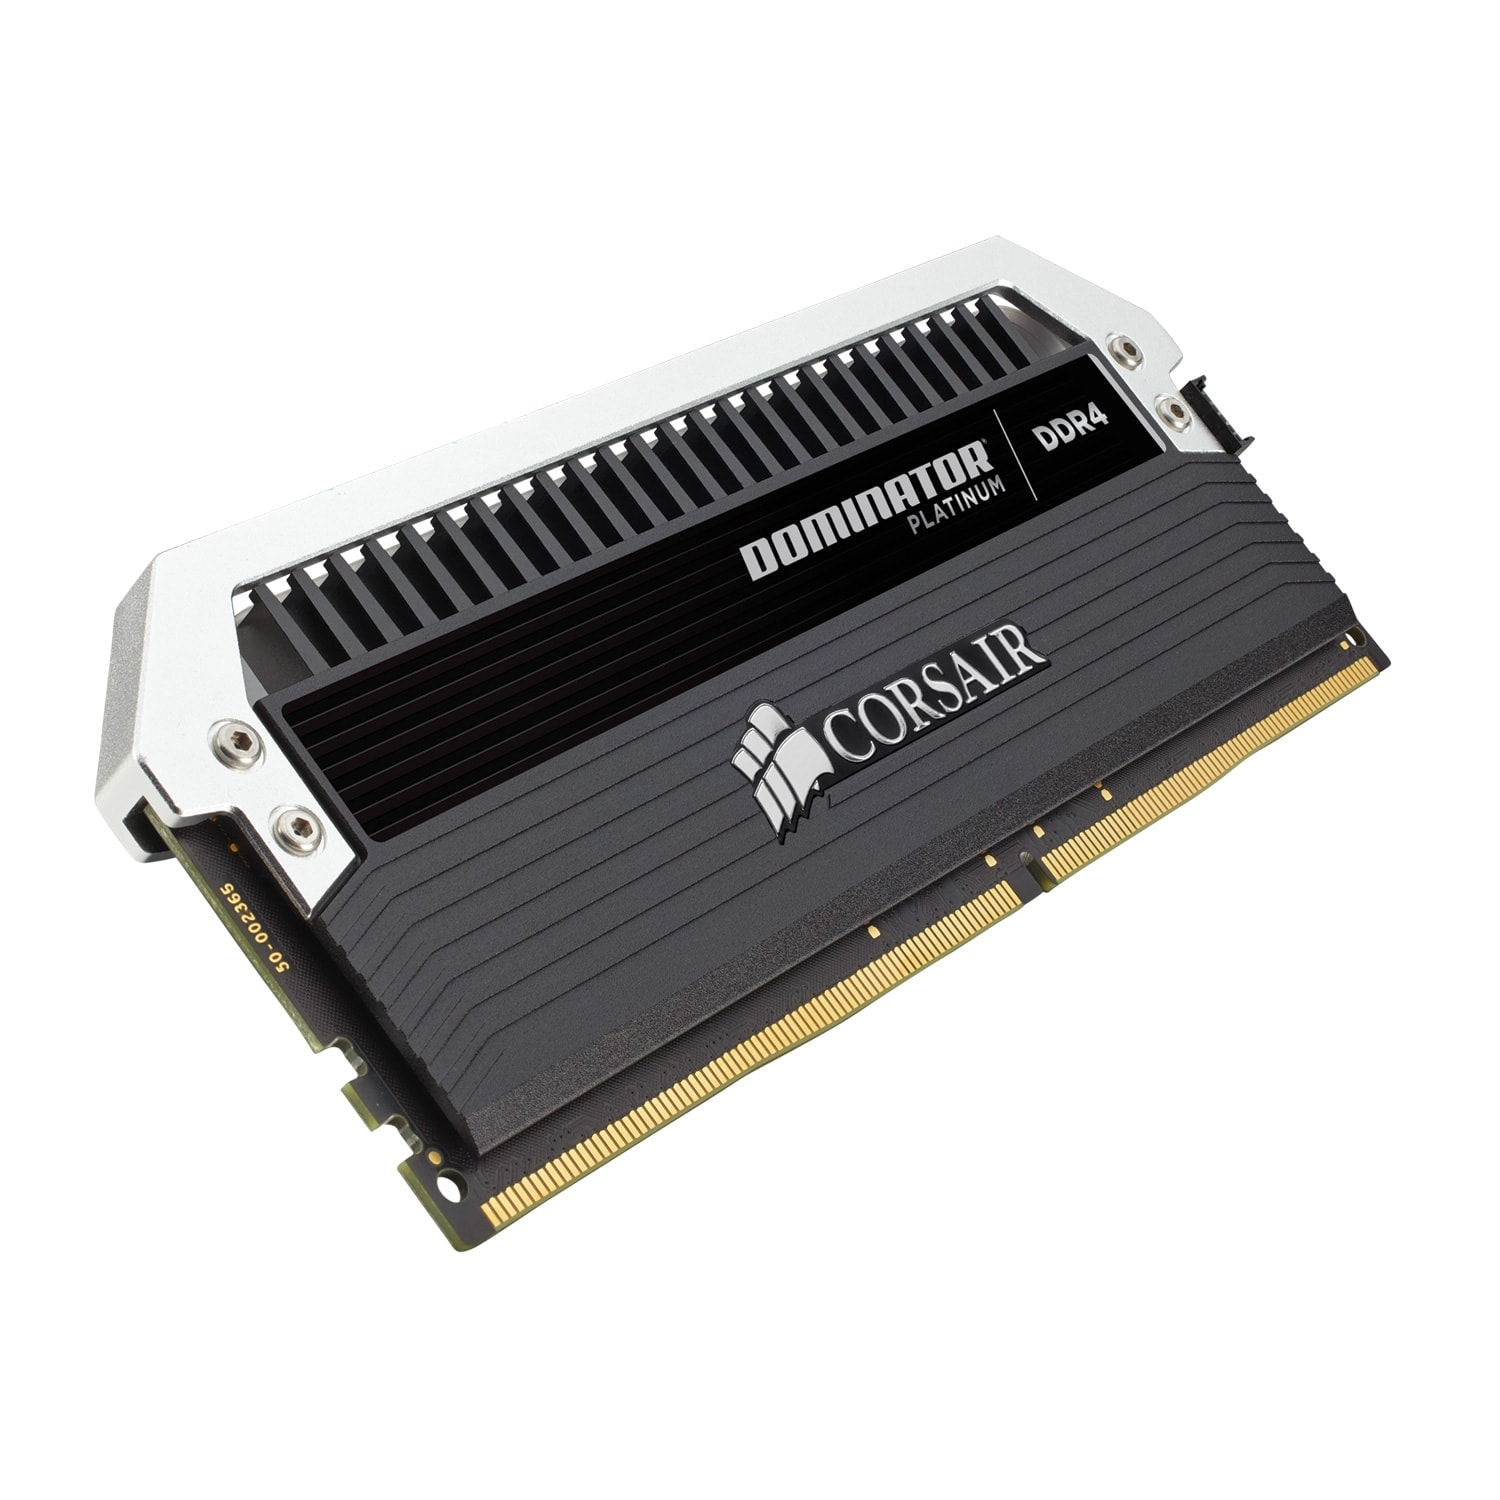 Corsair CMD32GX4M2B3000C15  32Go DDR4 3000MHz - Mémoire PC - 1